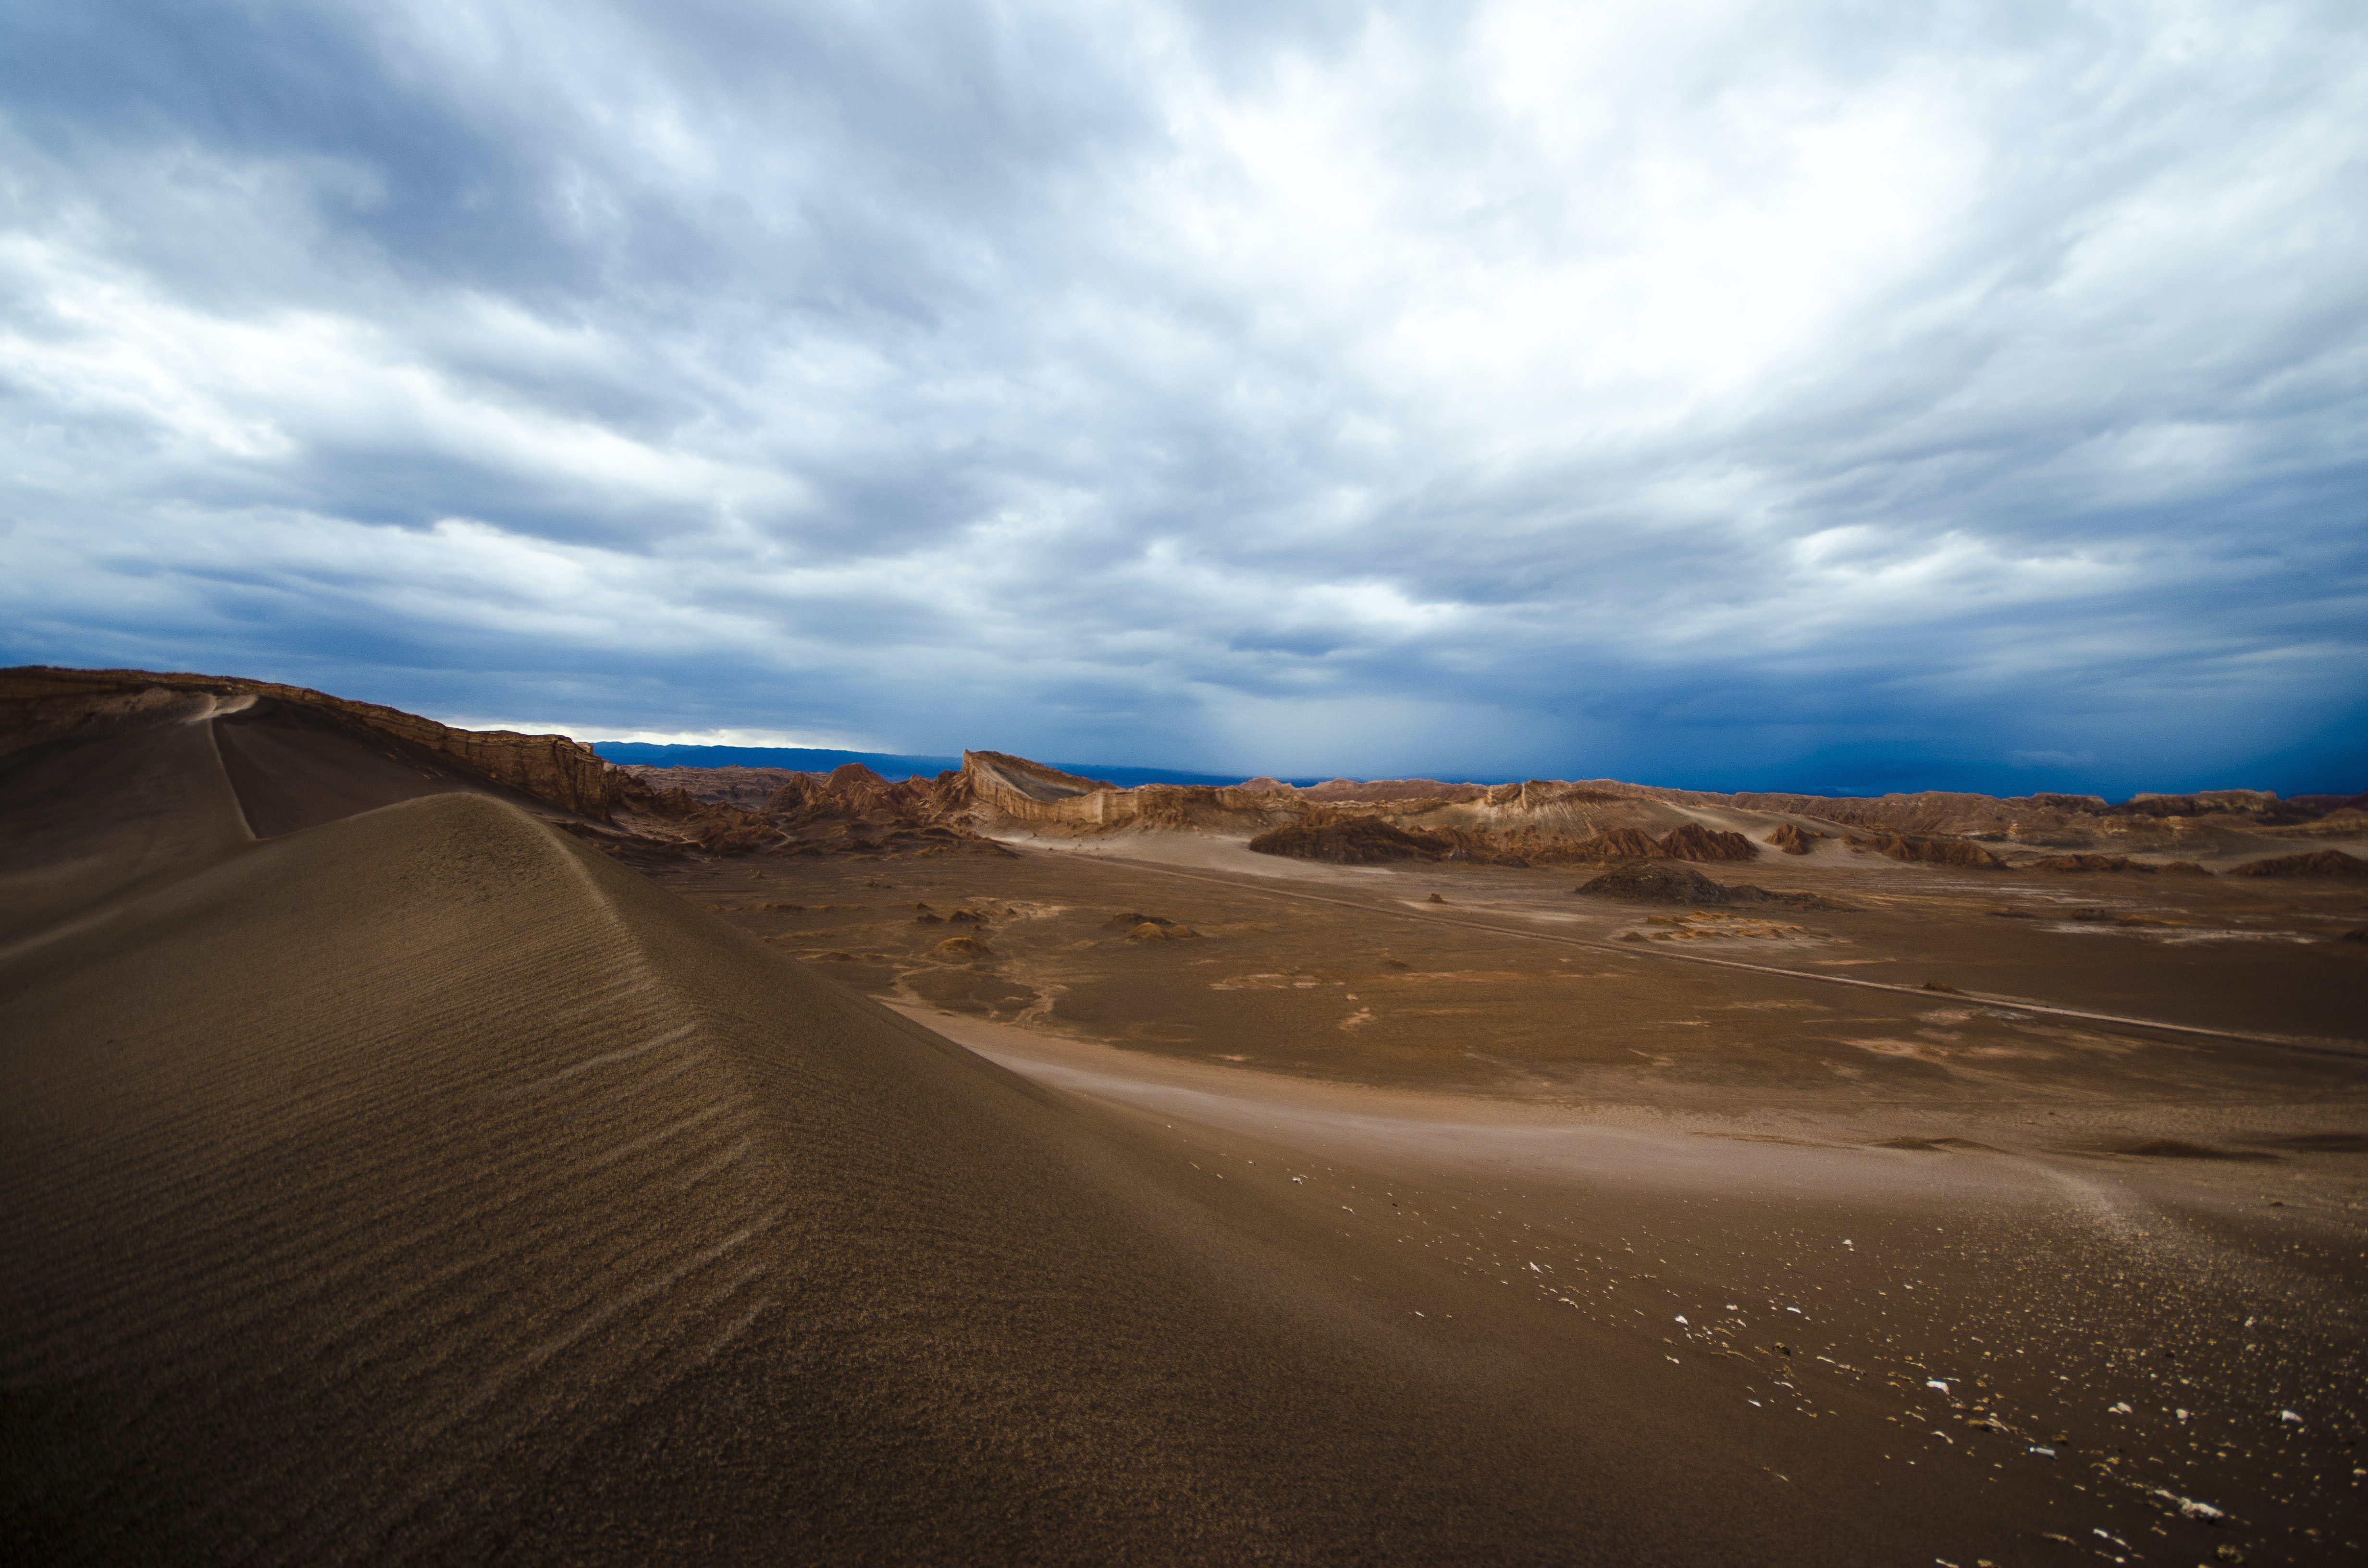 Clouds on a bright day over the sand dunes in Atacama Desert